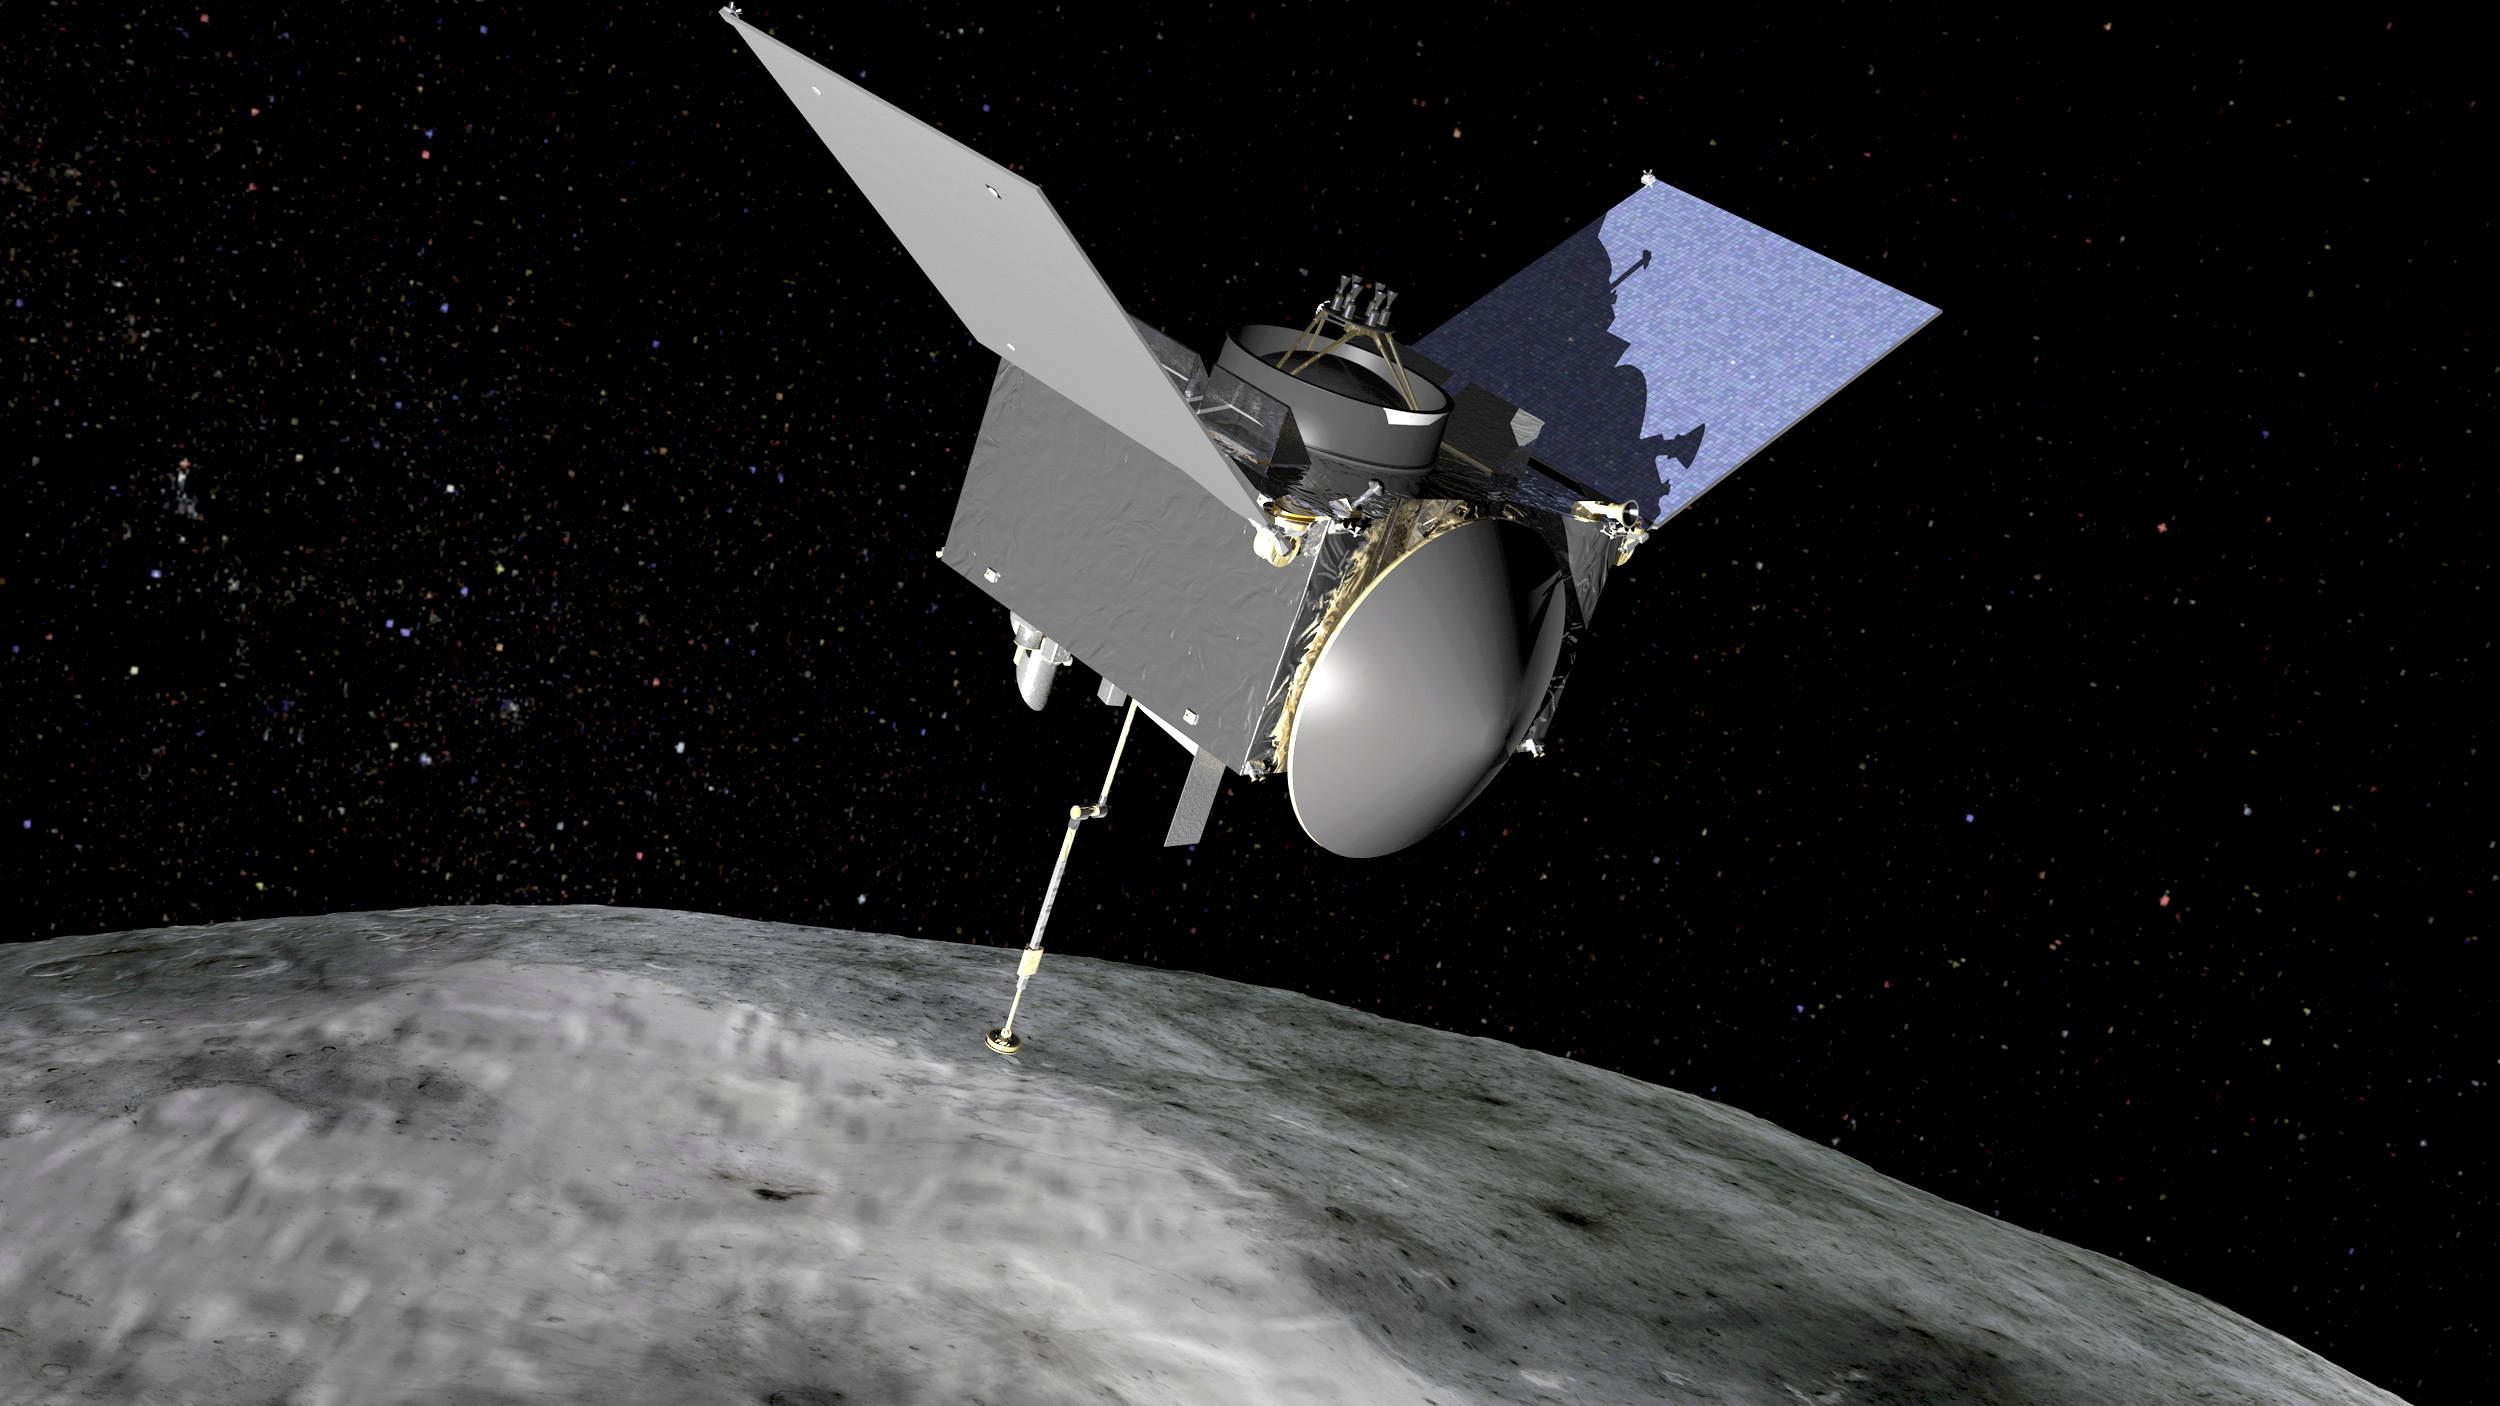 The Origins, Spectral Interpretation, Resource Identification, Security-Regolith Explorer (OSIRIS-REx) spacecraft which will travel to the near-Earth asteroid Bennu and bring a sample back to Earth for study is seen in an undated NASA artist rendering.   NASA/Handout via Reuters